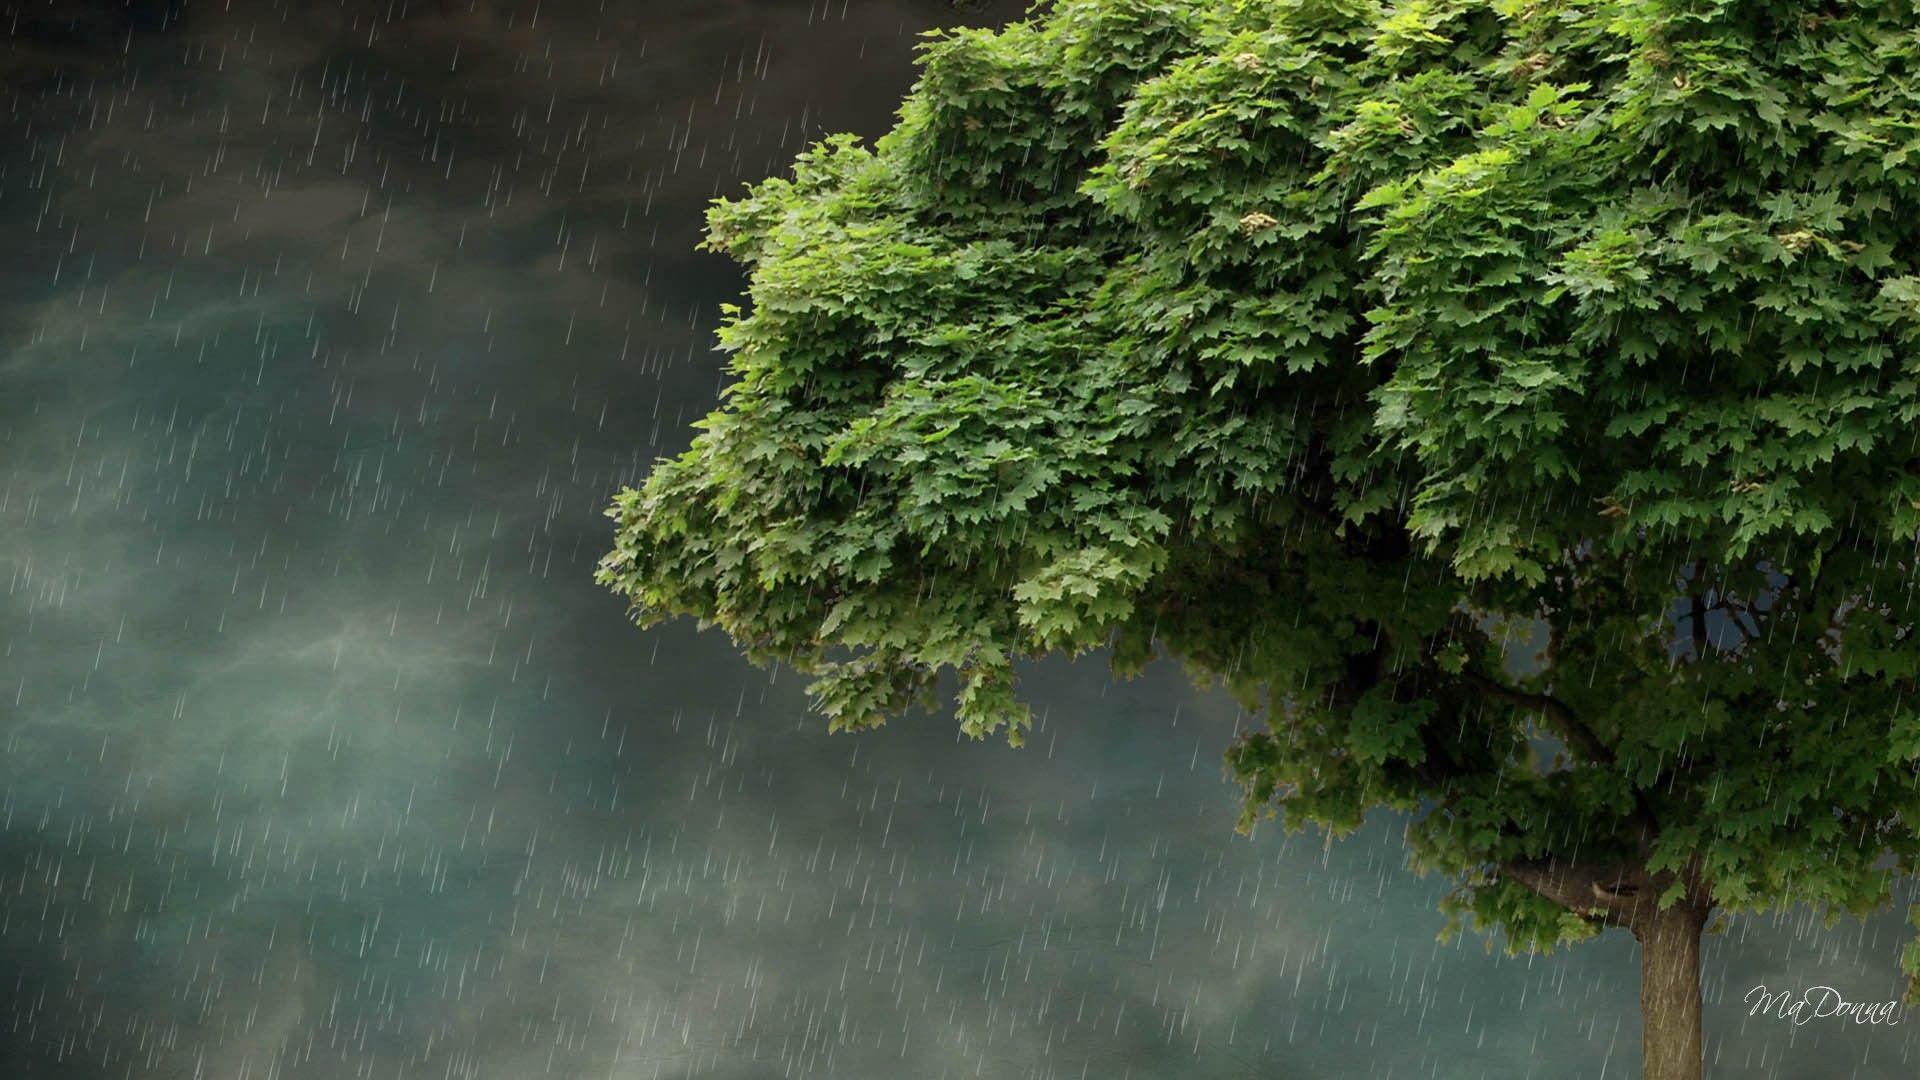 Rain Love Wallpaper Desktop : HQ Japan Nature Rain Fall Wallpapers HD Wallpapers HD Wallpapers Pinterest Wallpaper, Hd ...